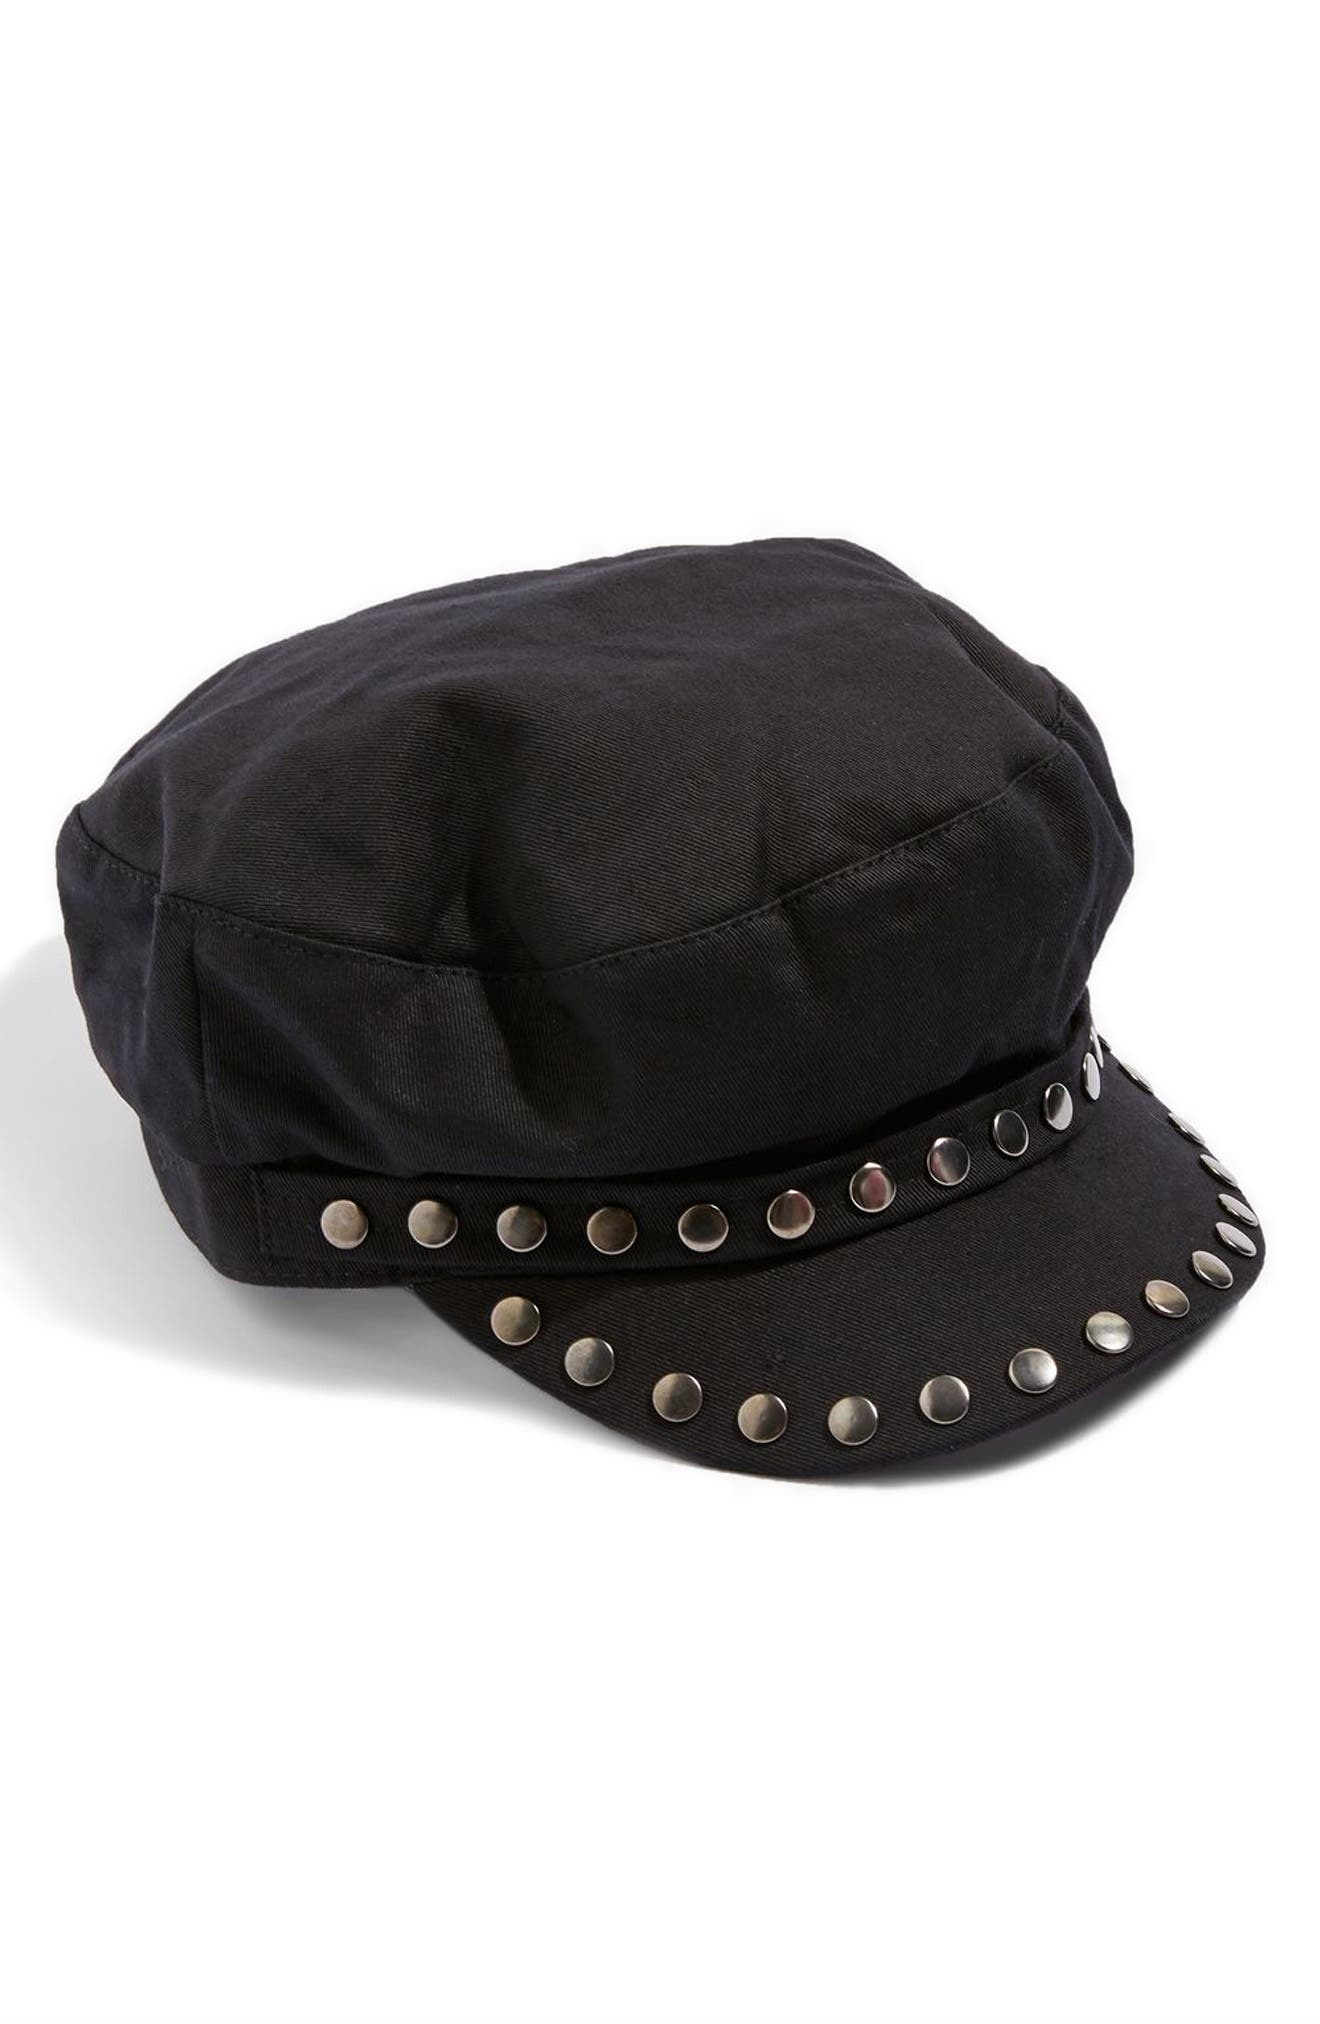 Studded Baker Boy Cap,                             Main thumbnail 1, color,                             Black Multi